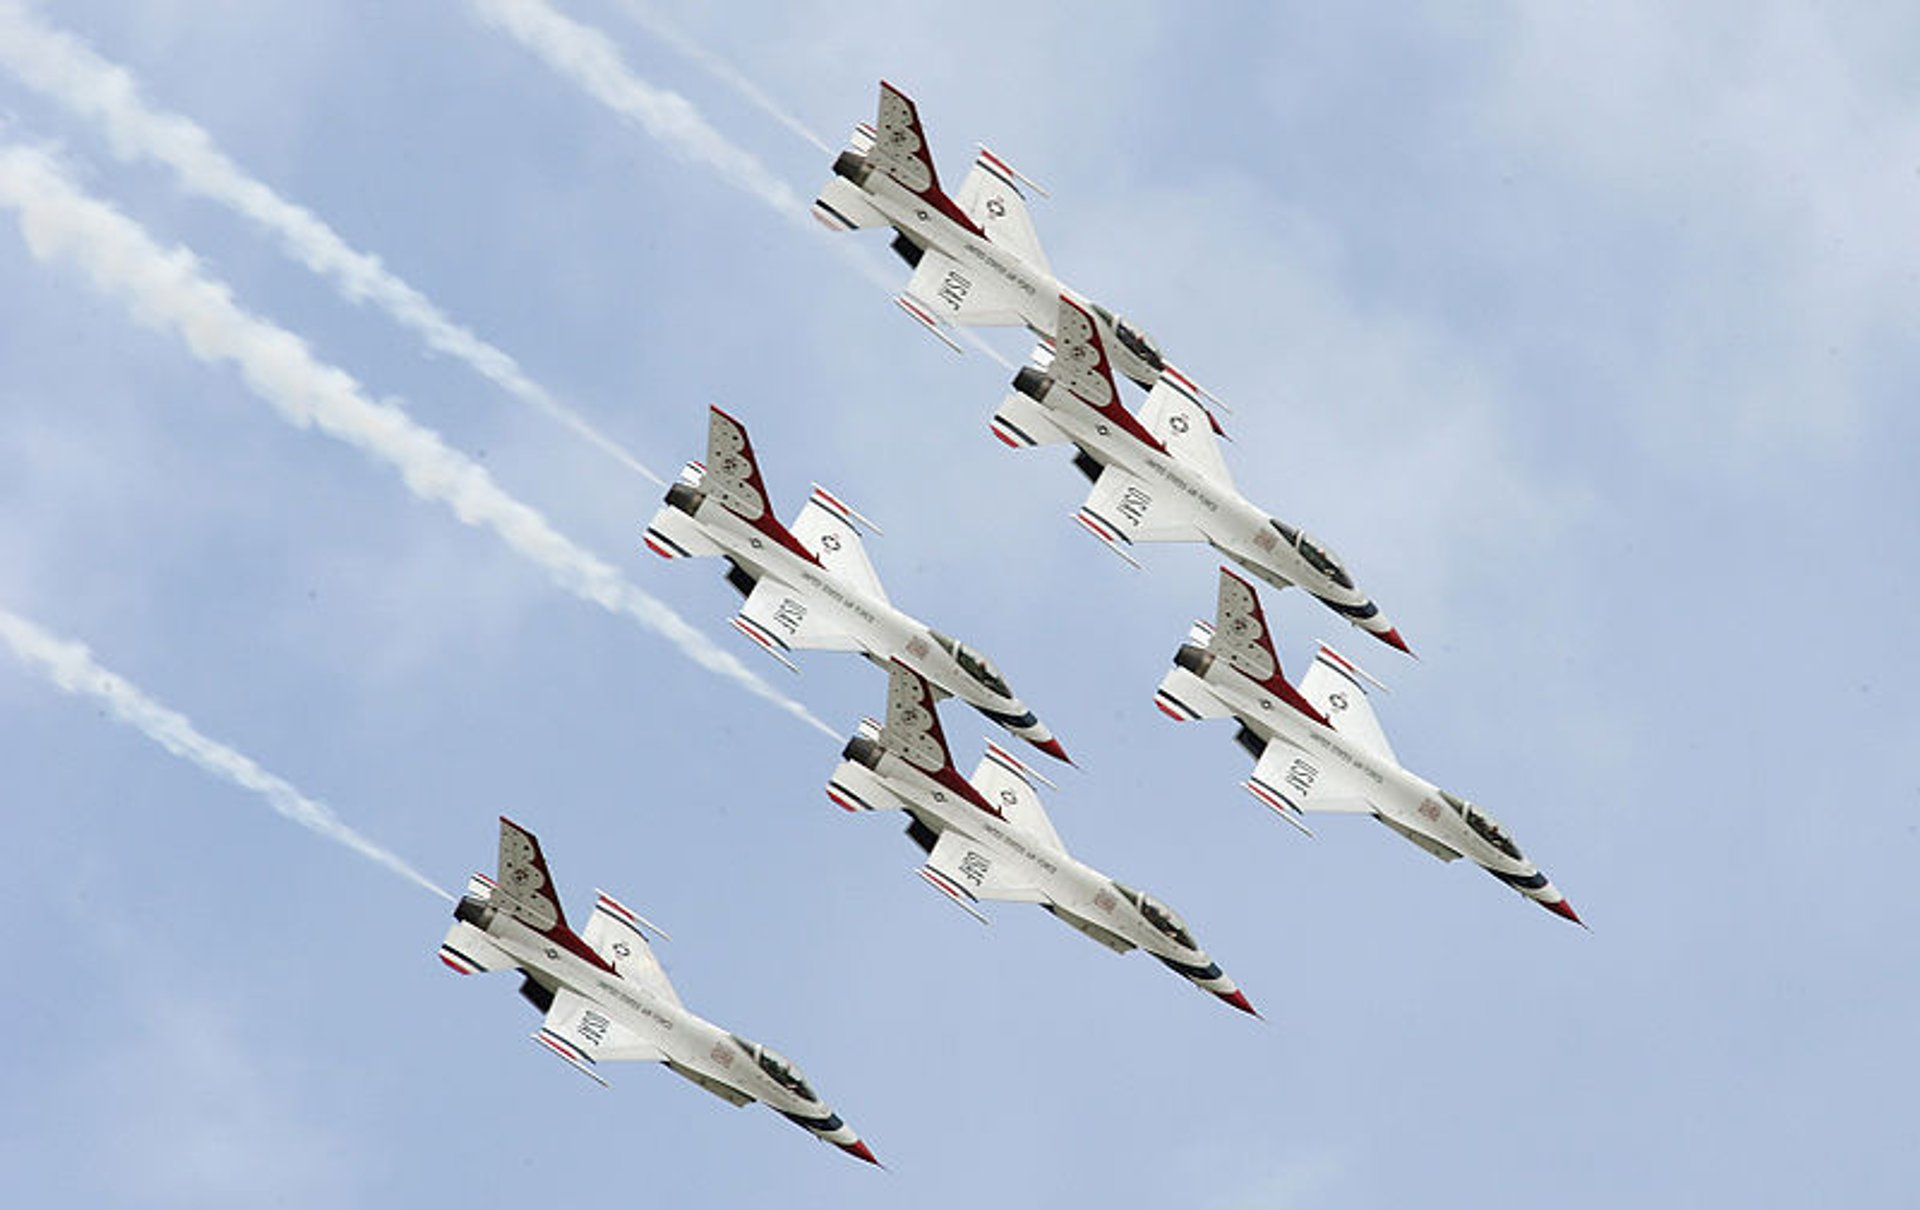 The U.S. Air Force Thunderbirds perform the Delta Roll 2020